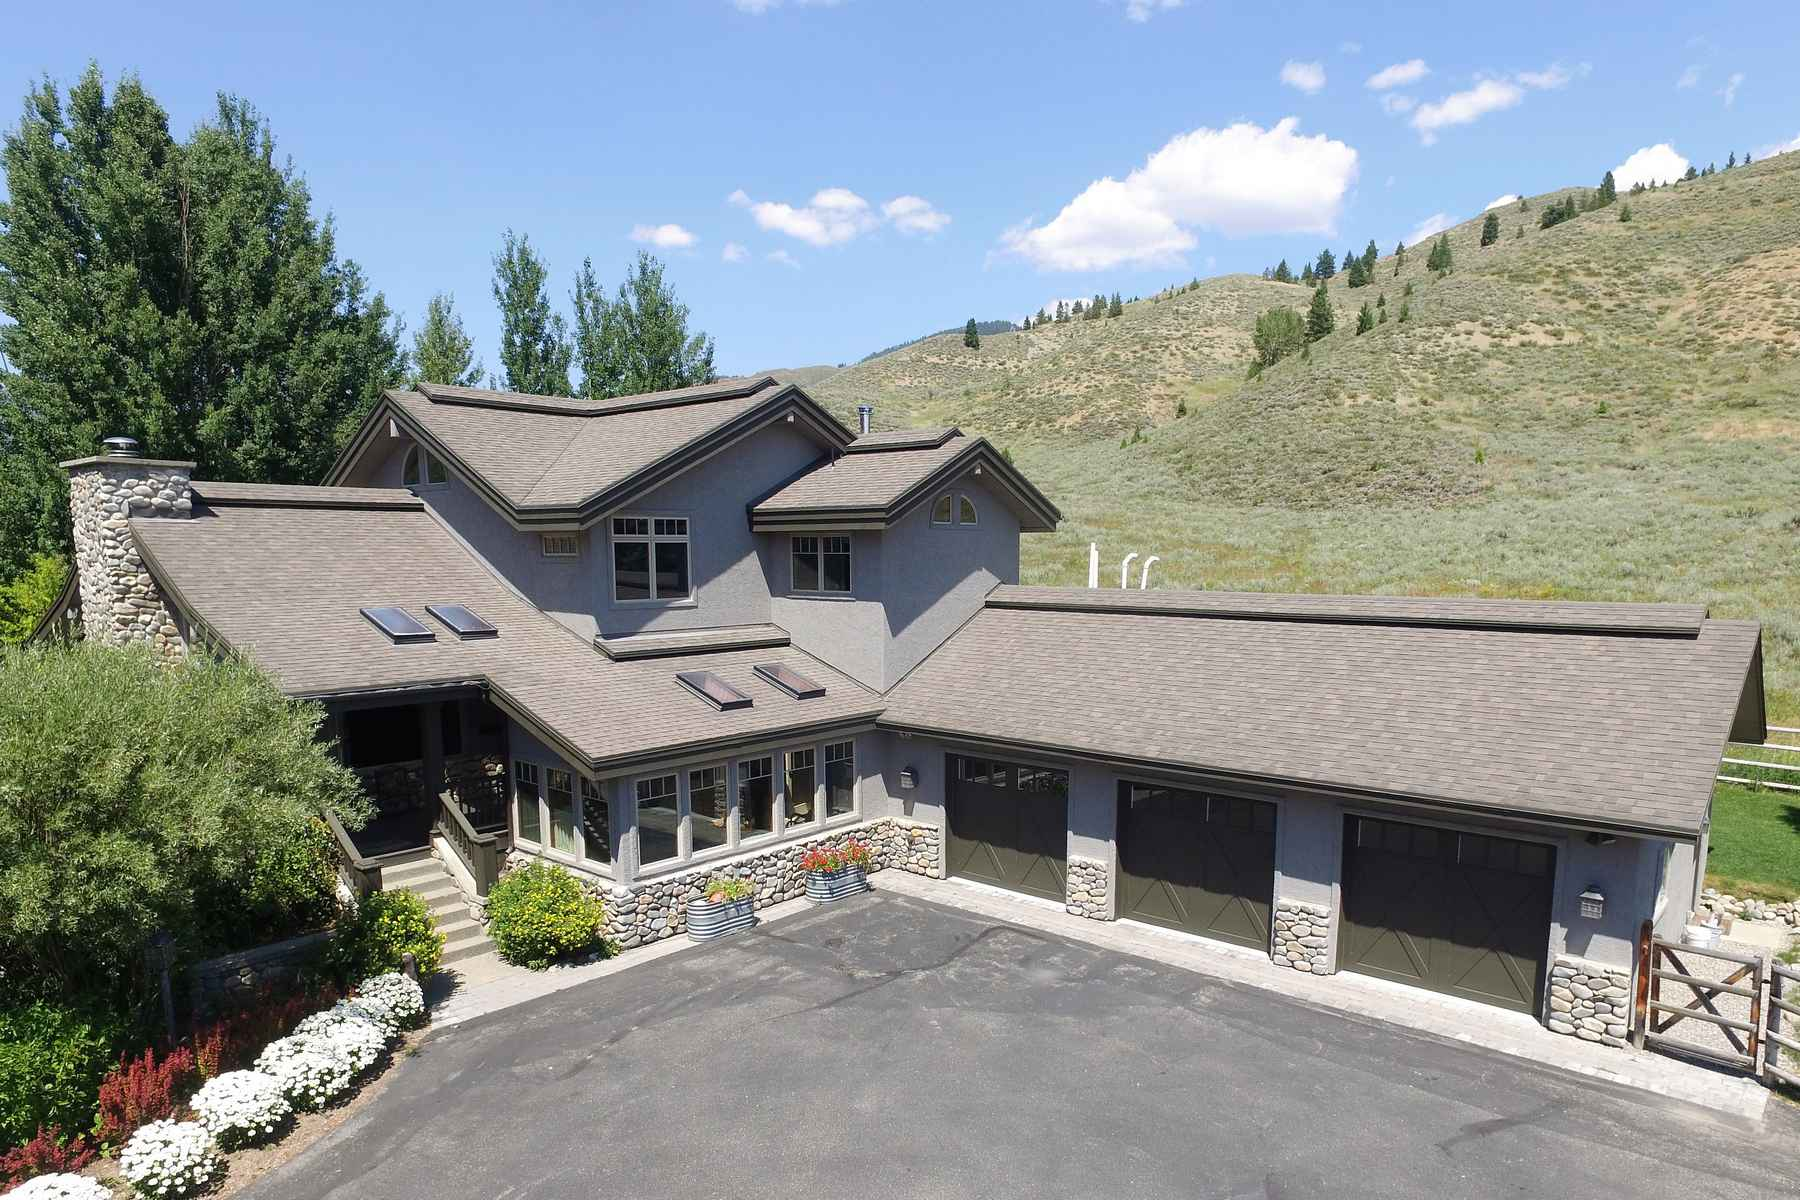 Casa Unifamiliar por un Venta en The Quintessential Idaho Home 13391 Highway 75 North Of Ketchum, Ketchum, Idaho, 83340 Estados Unidos